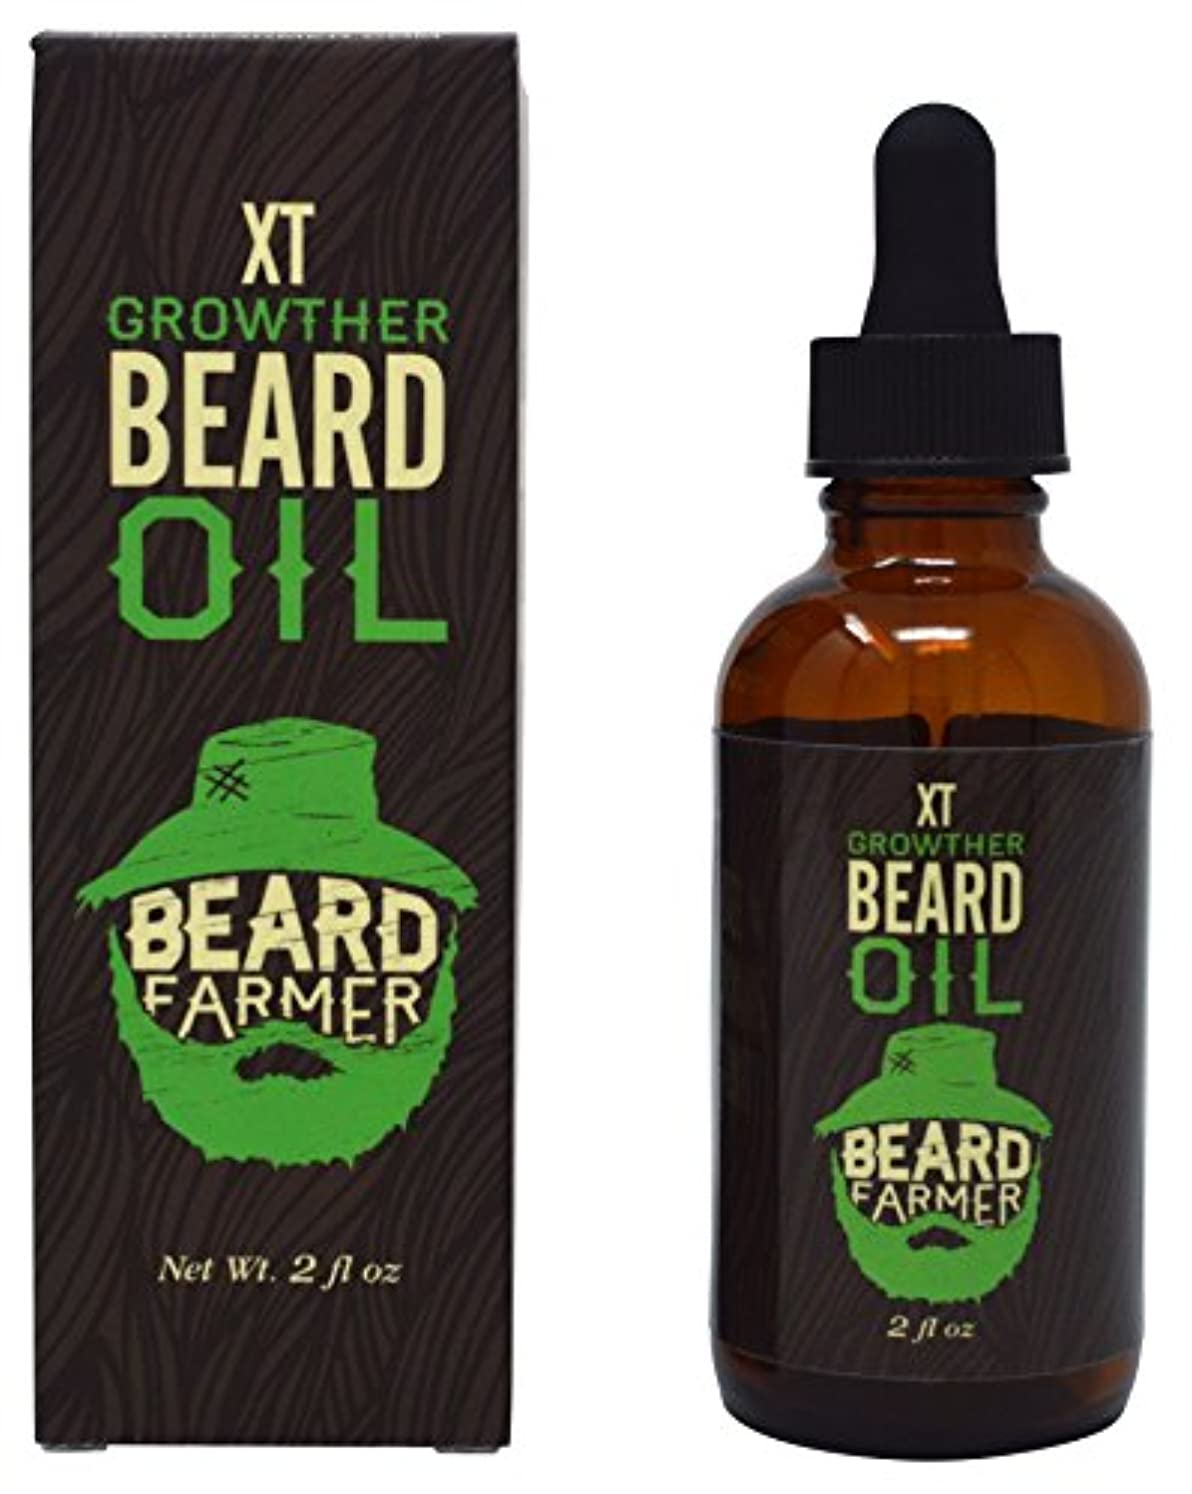 レース海岸受粉するBeard Farmer - Growther XT Beard Oil (Extra Fast Beard Growth) All Natural Beard Growth Oil 2floz